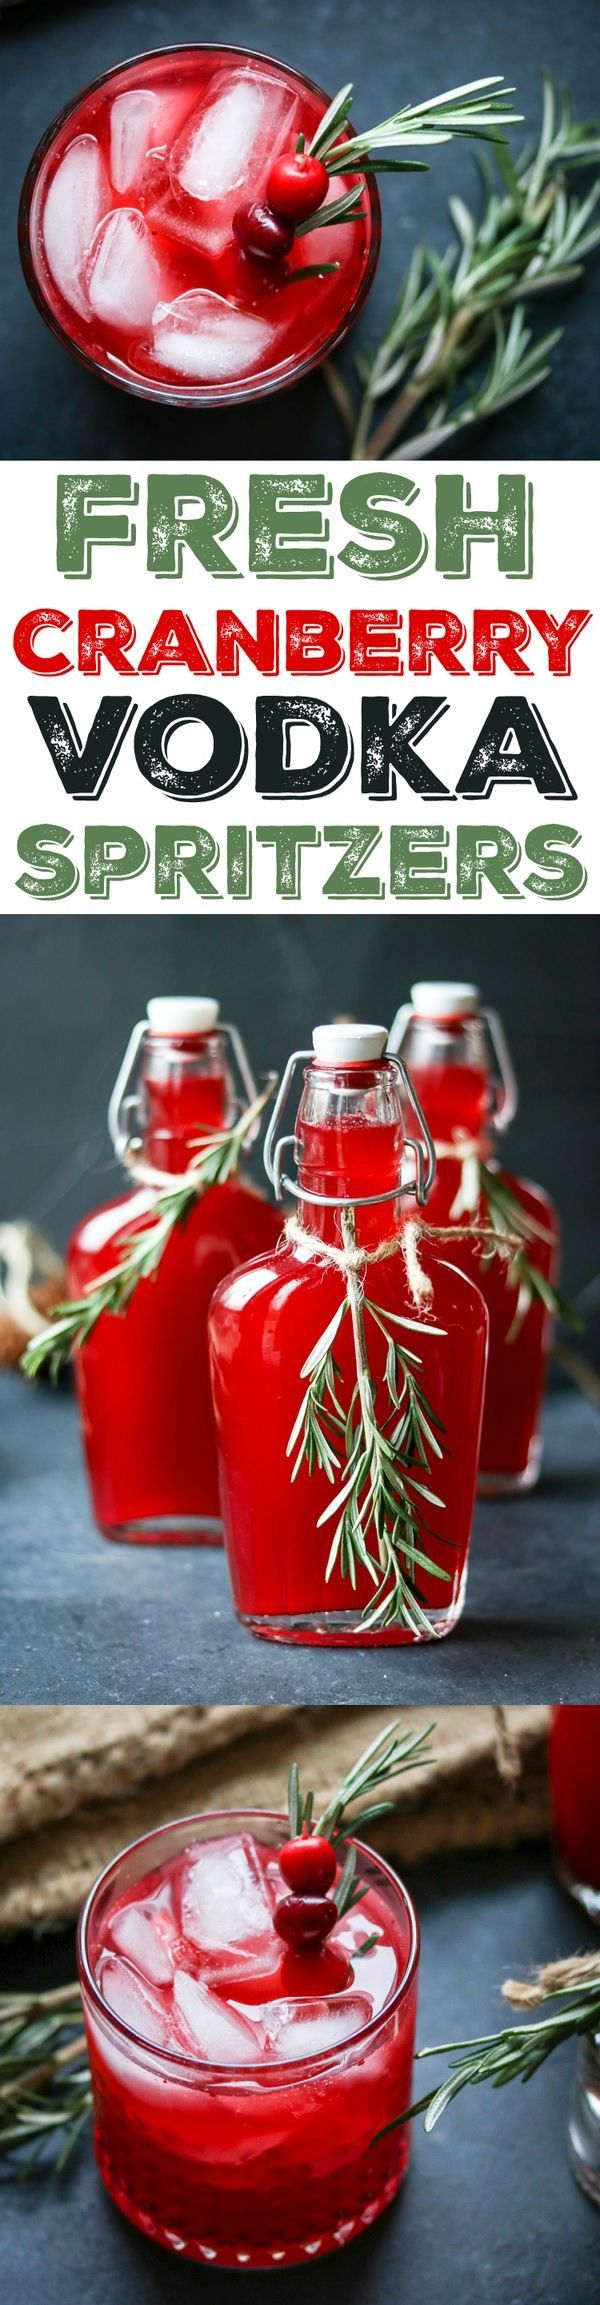 Fresh Cranberry Vodka Spritzers with Rosemary